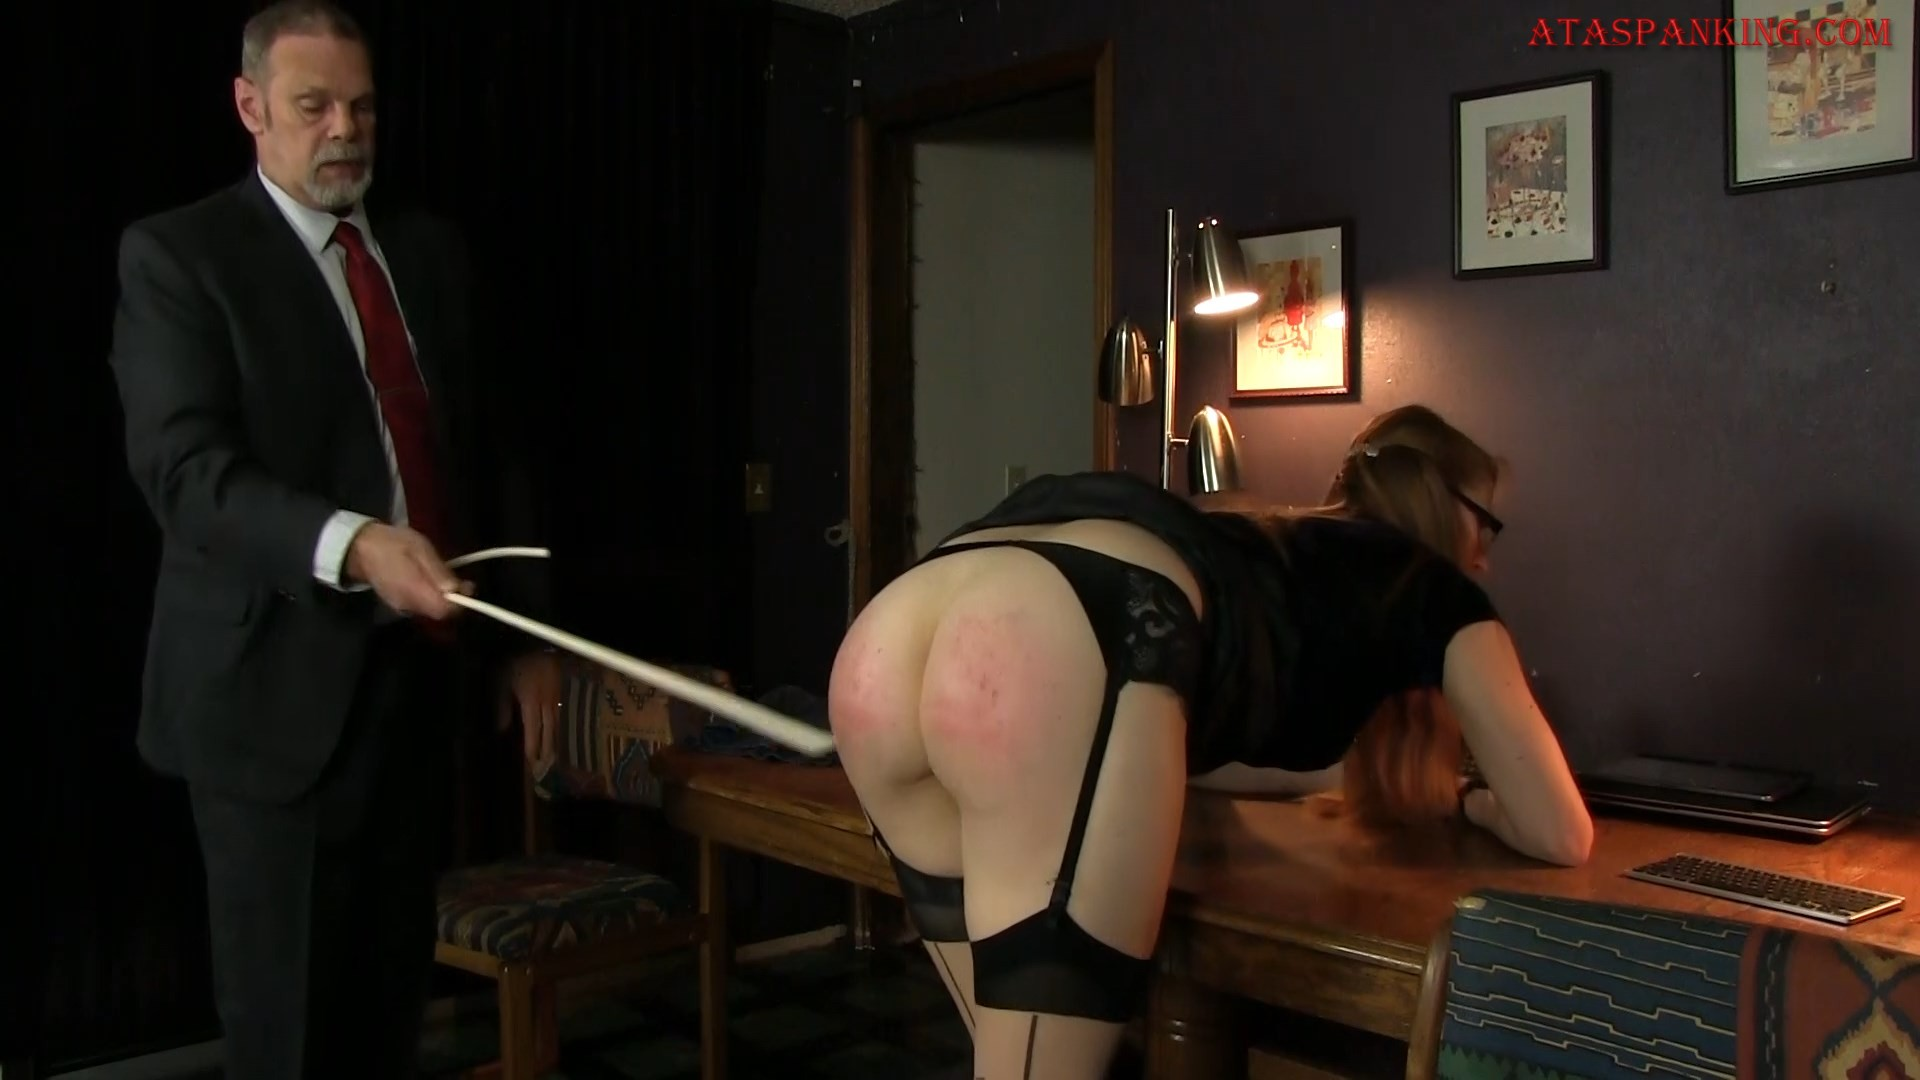 spank-video-websites-femdom-strapon-fourm